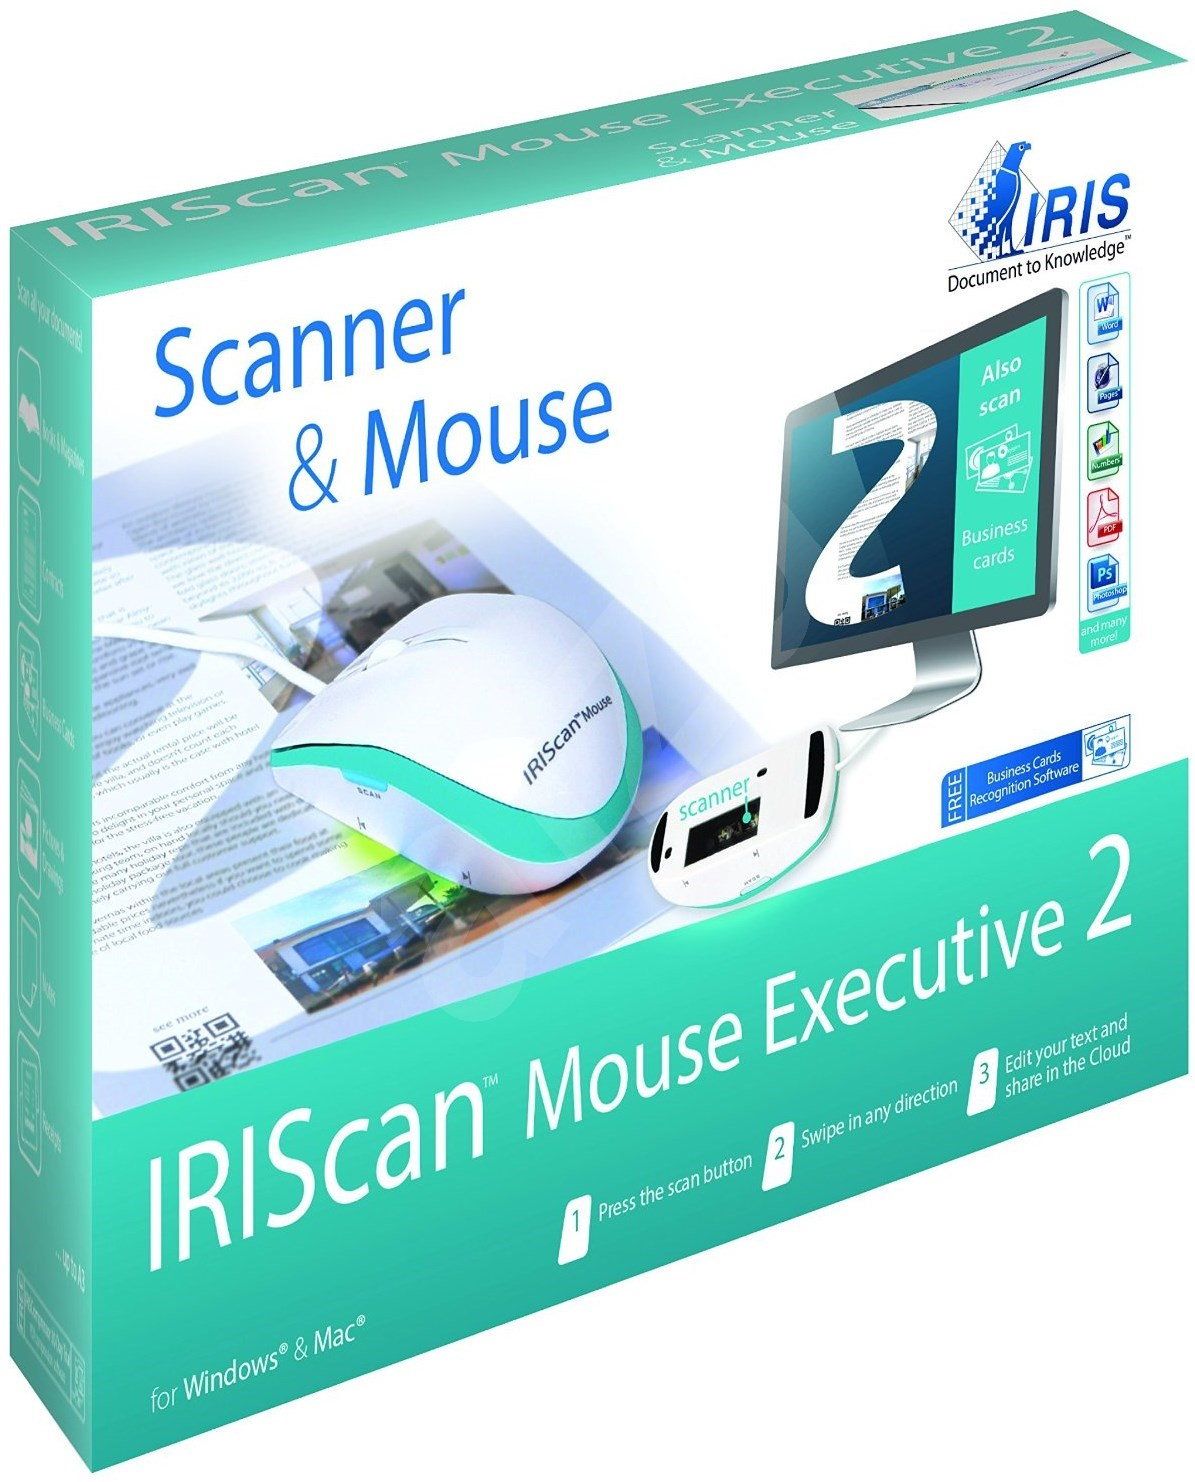 iris iriscan mouse executive 2 white scanner. Black Bedroom Furniture Sets. Home Design Ideas